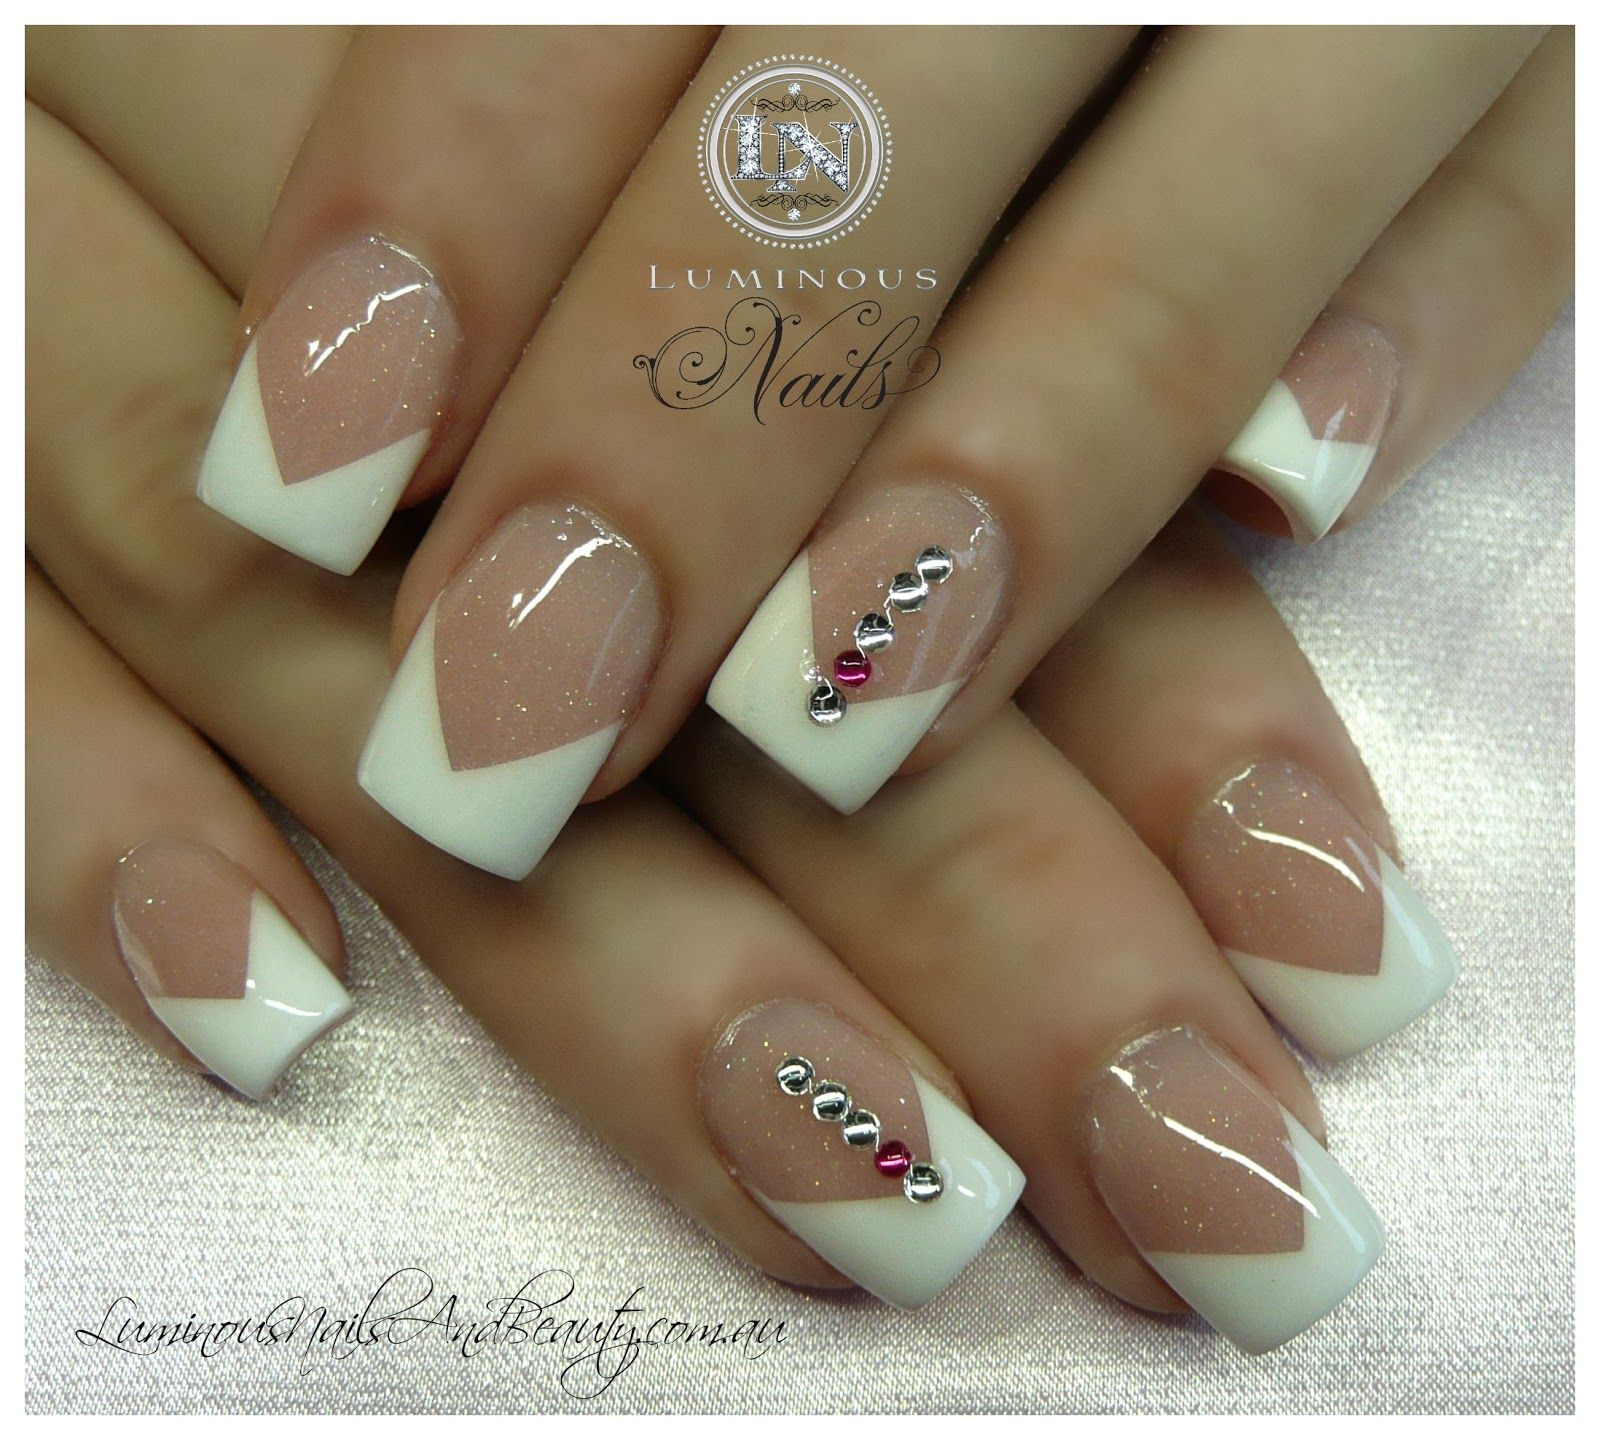 French Acrylic Nails | ... .+Acrylic+Nails,+Gel+Nails,+Sculptured+ ...